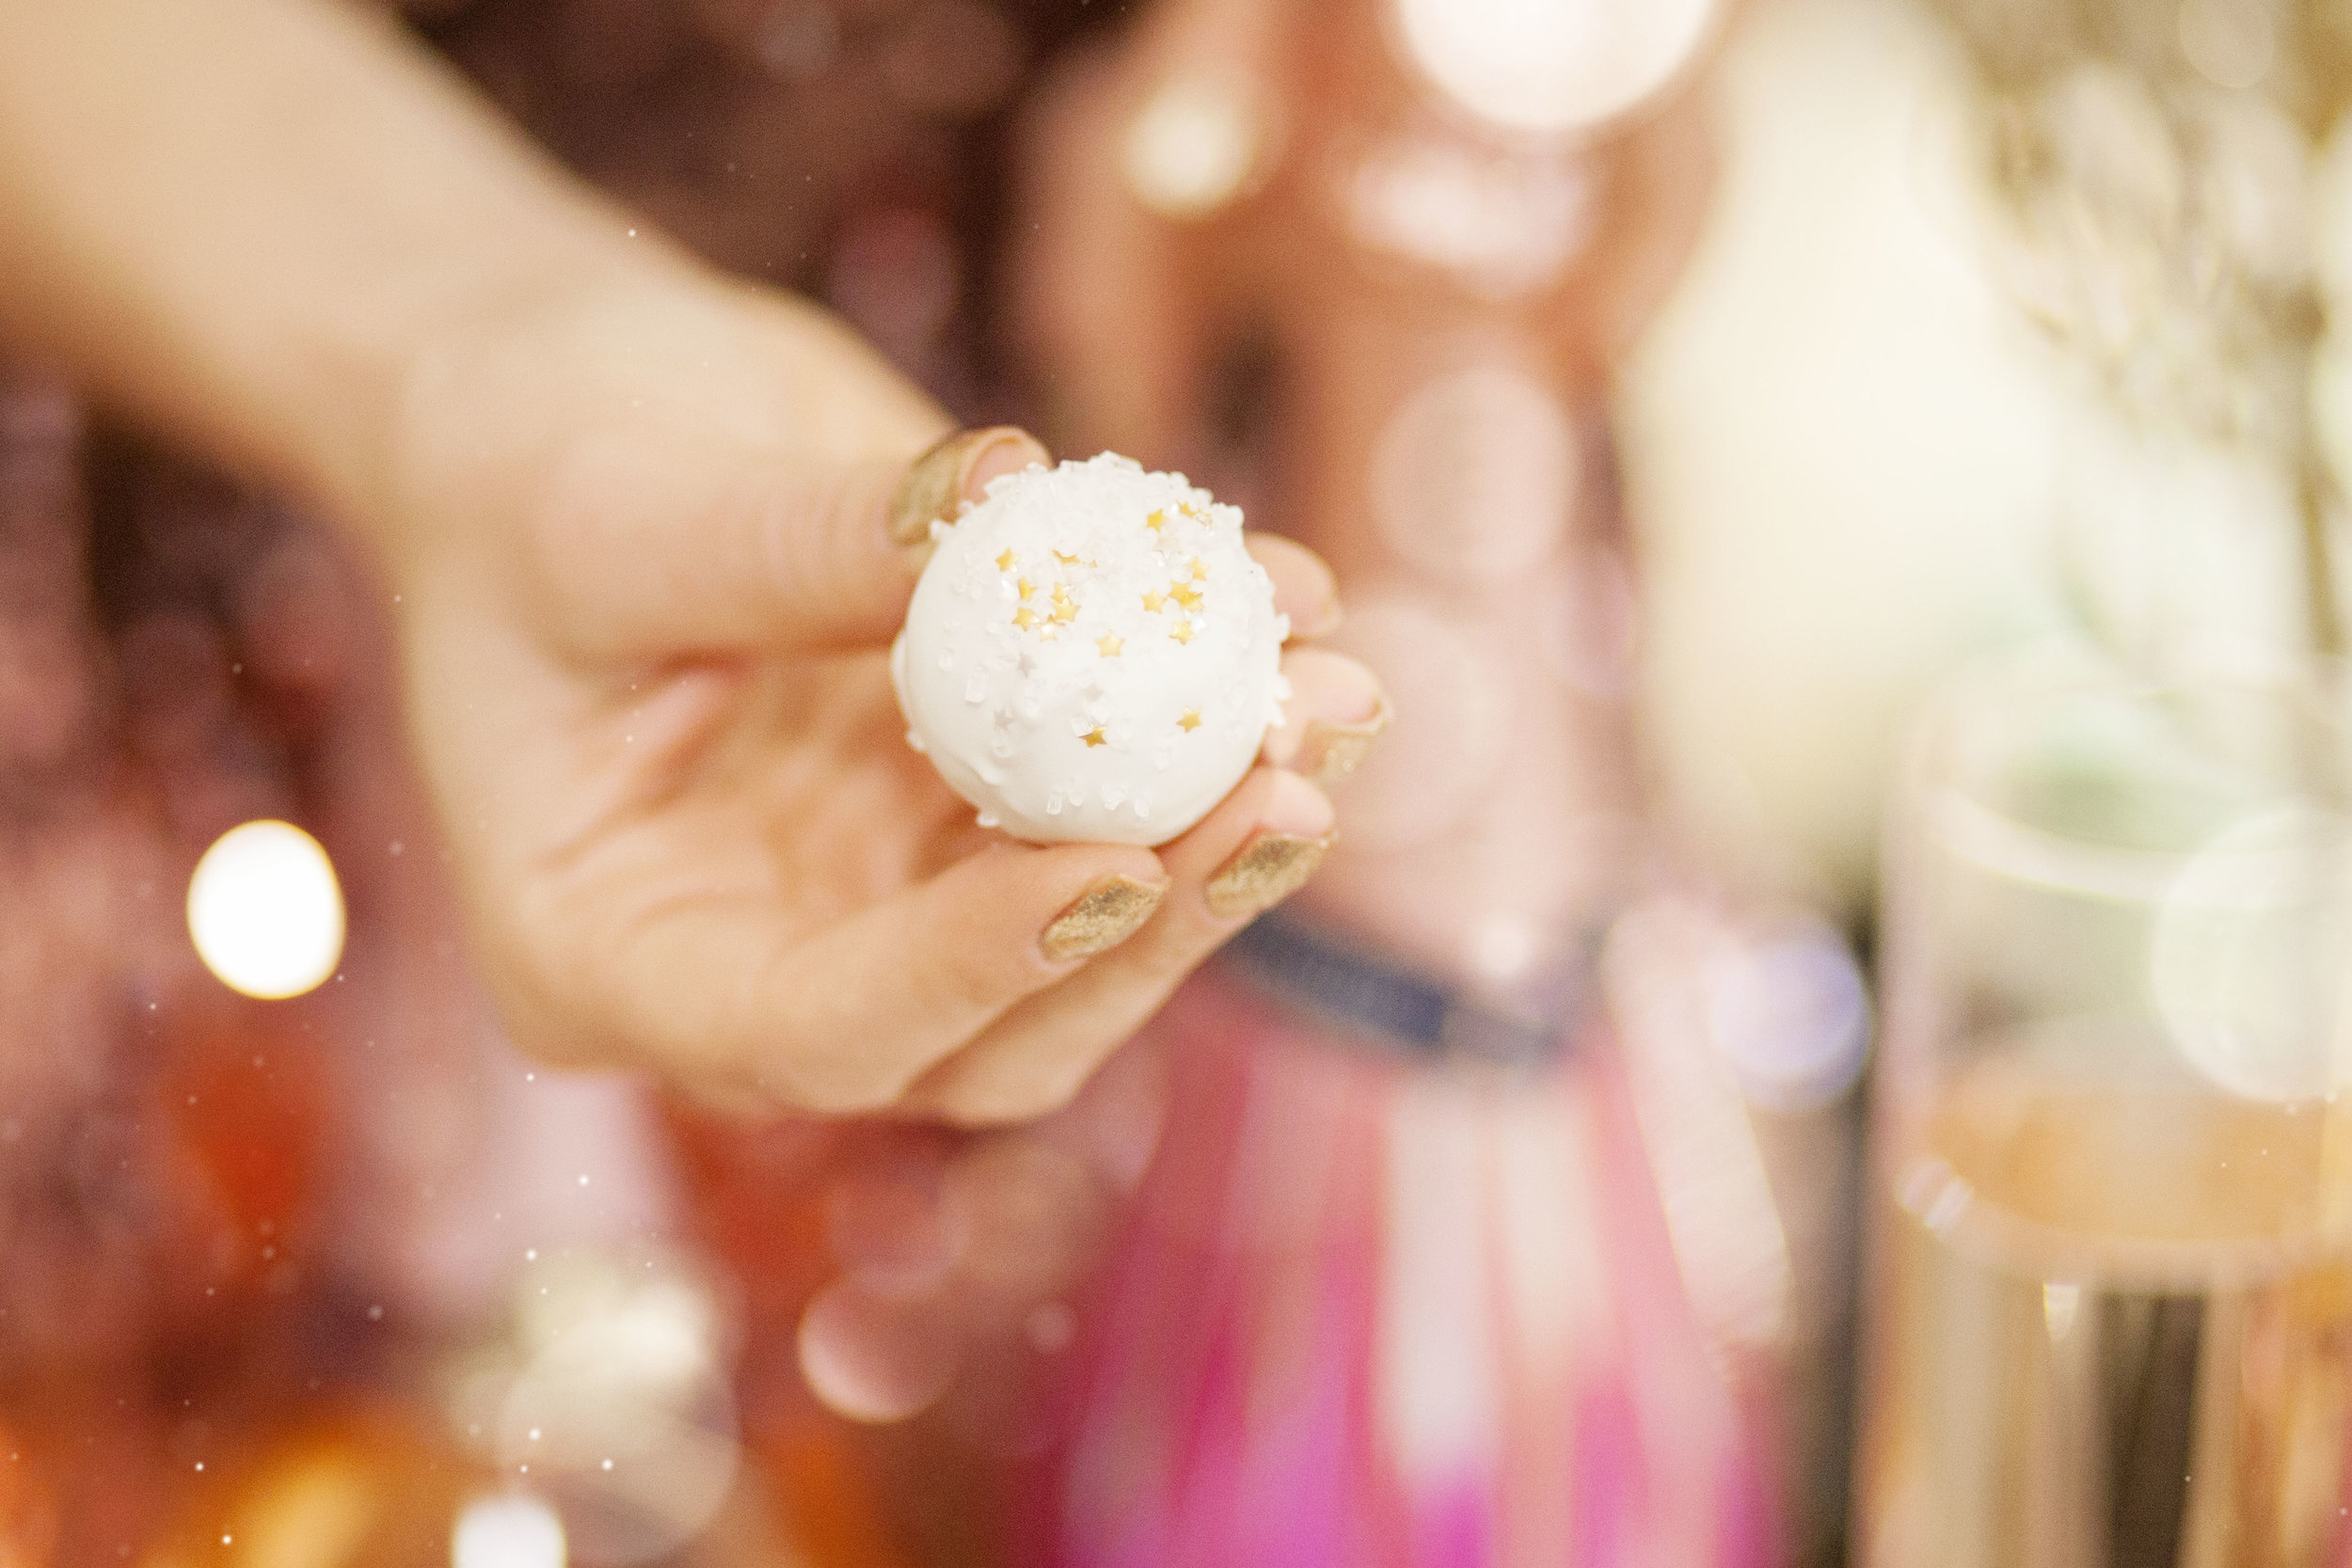 Glitz Ball Truffle from Lolli and Pops